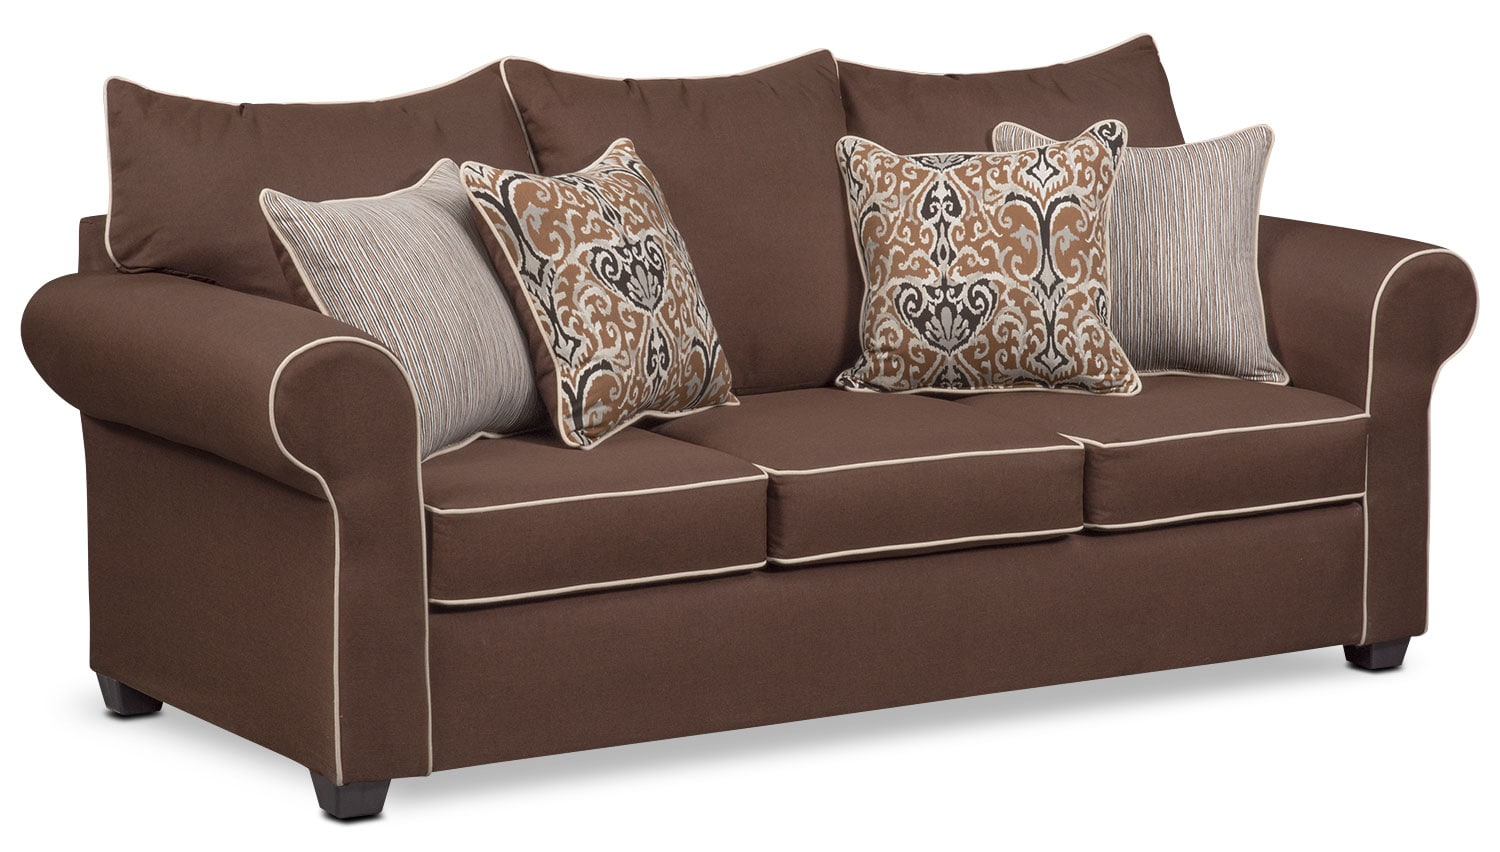 Living Room Furniture - Carla Queen Memory Foam Sleeper Sofa - Chocolate